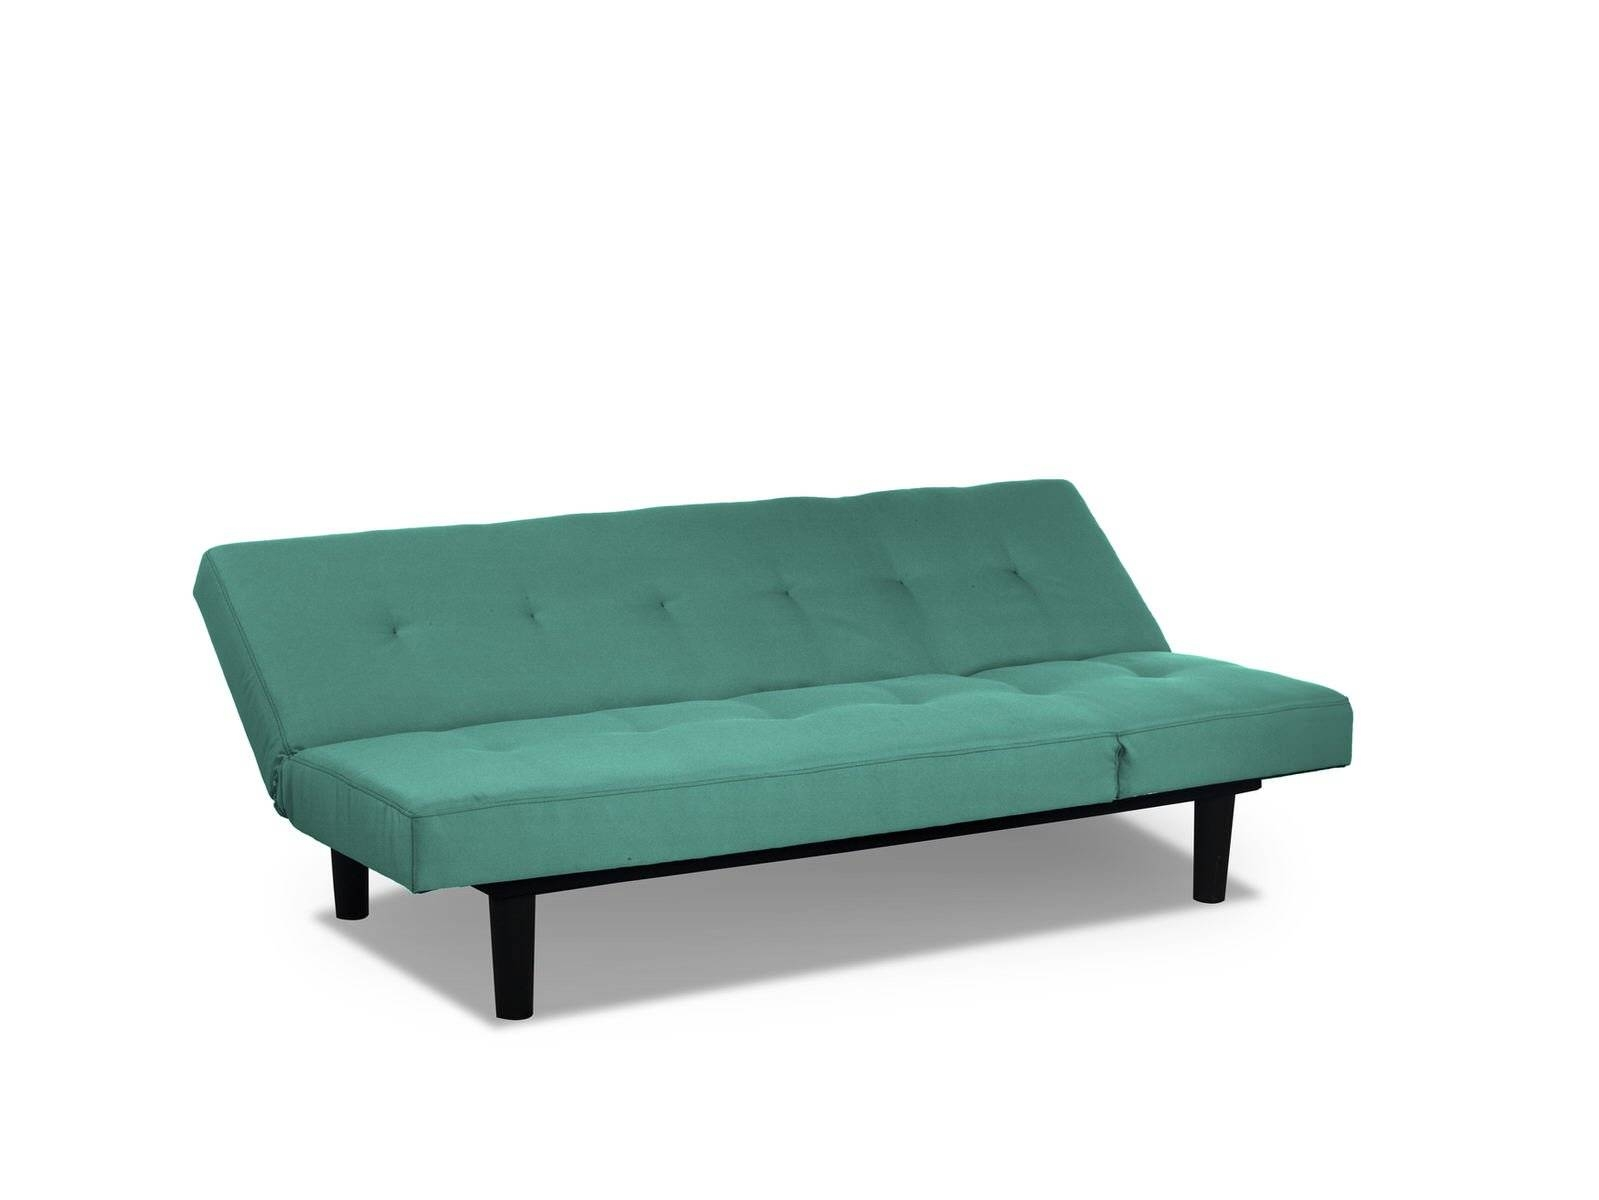 Mini Lounger Convertible Sofa Bed Tealserta / Lifestyle for Mini Sofa Beds (Image 15 of 30)